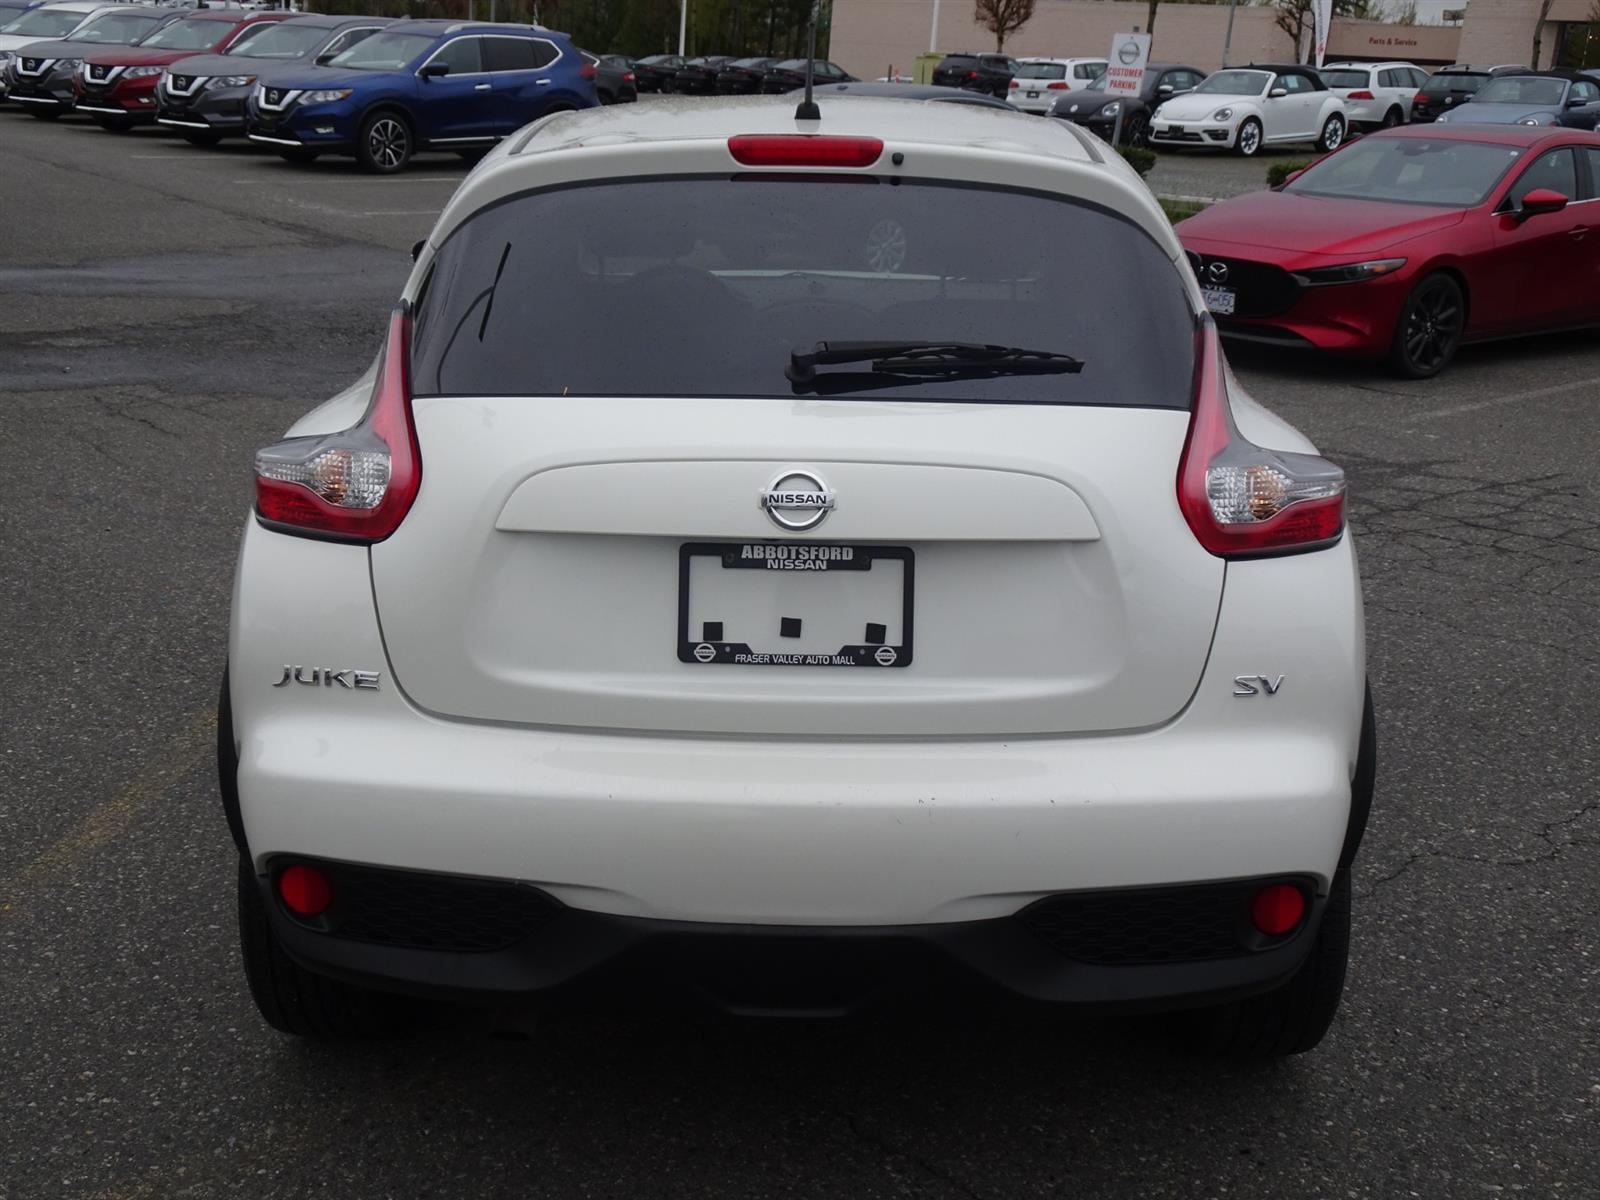 Used 2016 Nissan Juke in Abbotsford,BC